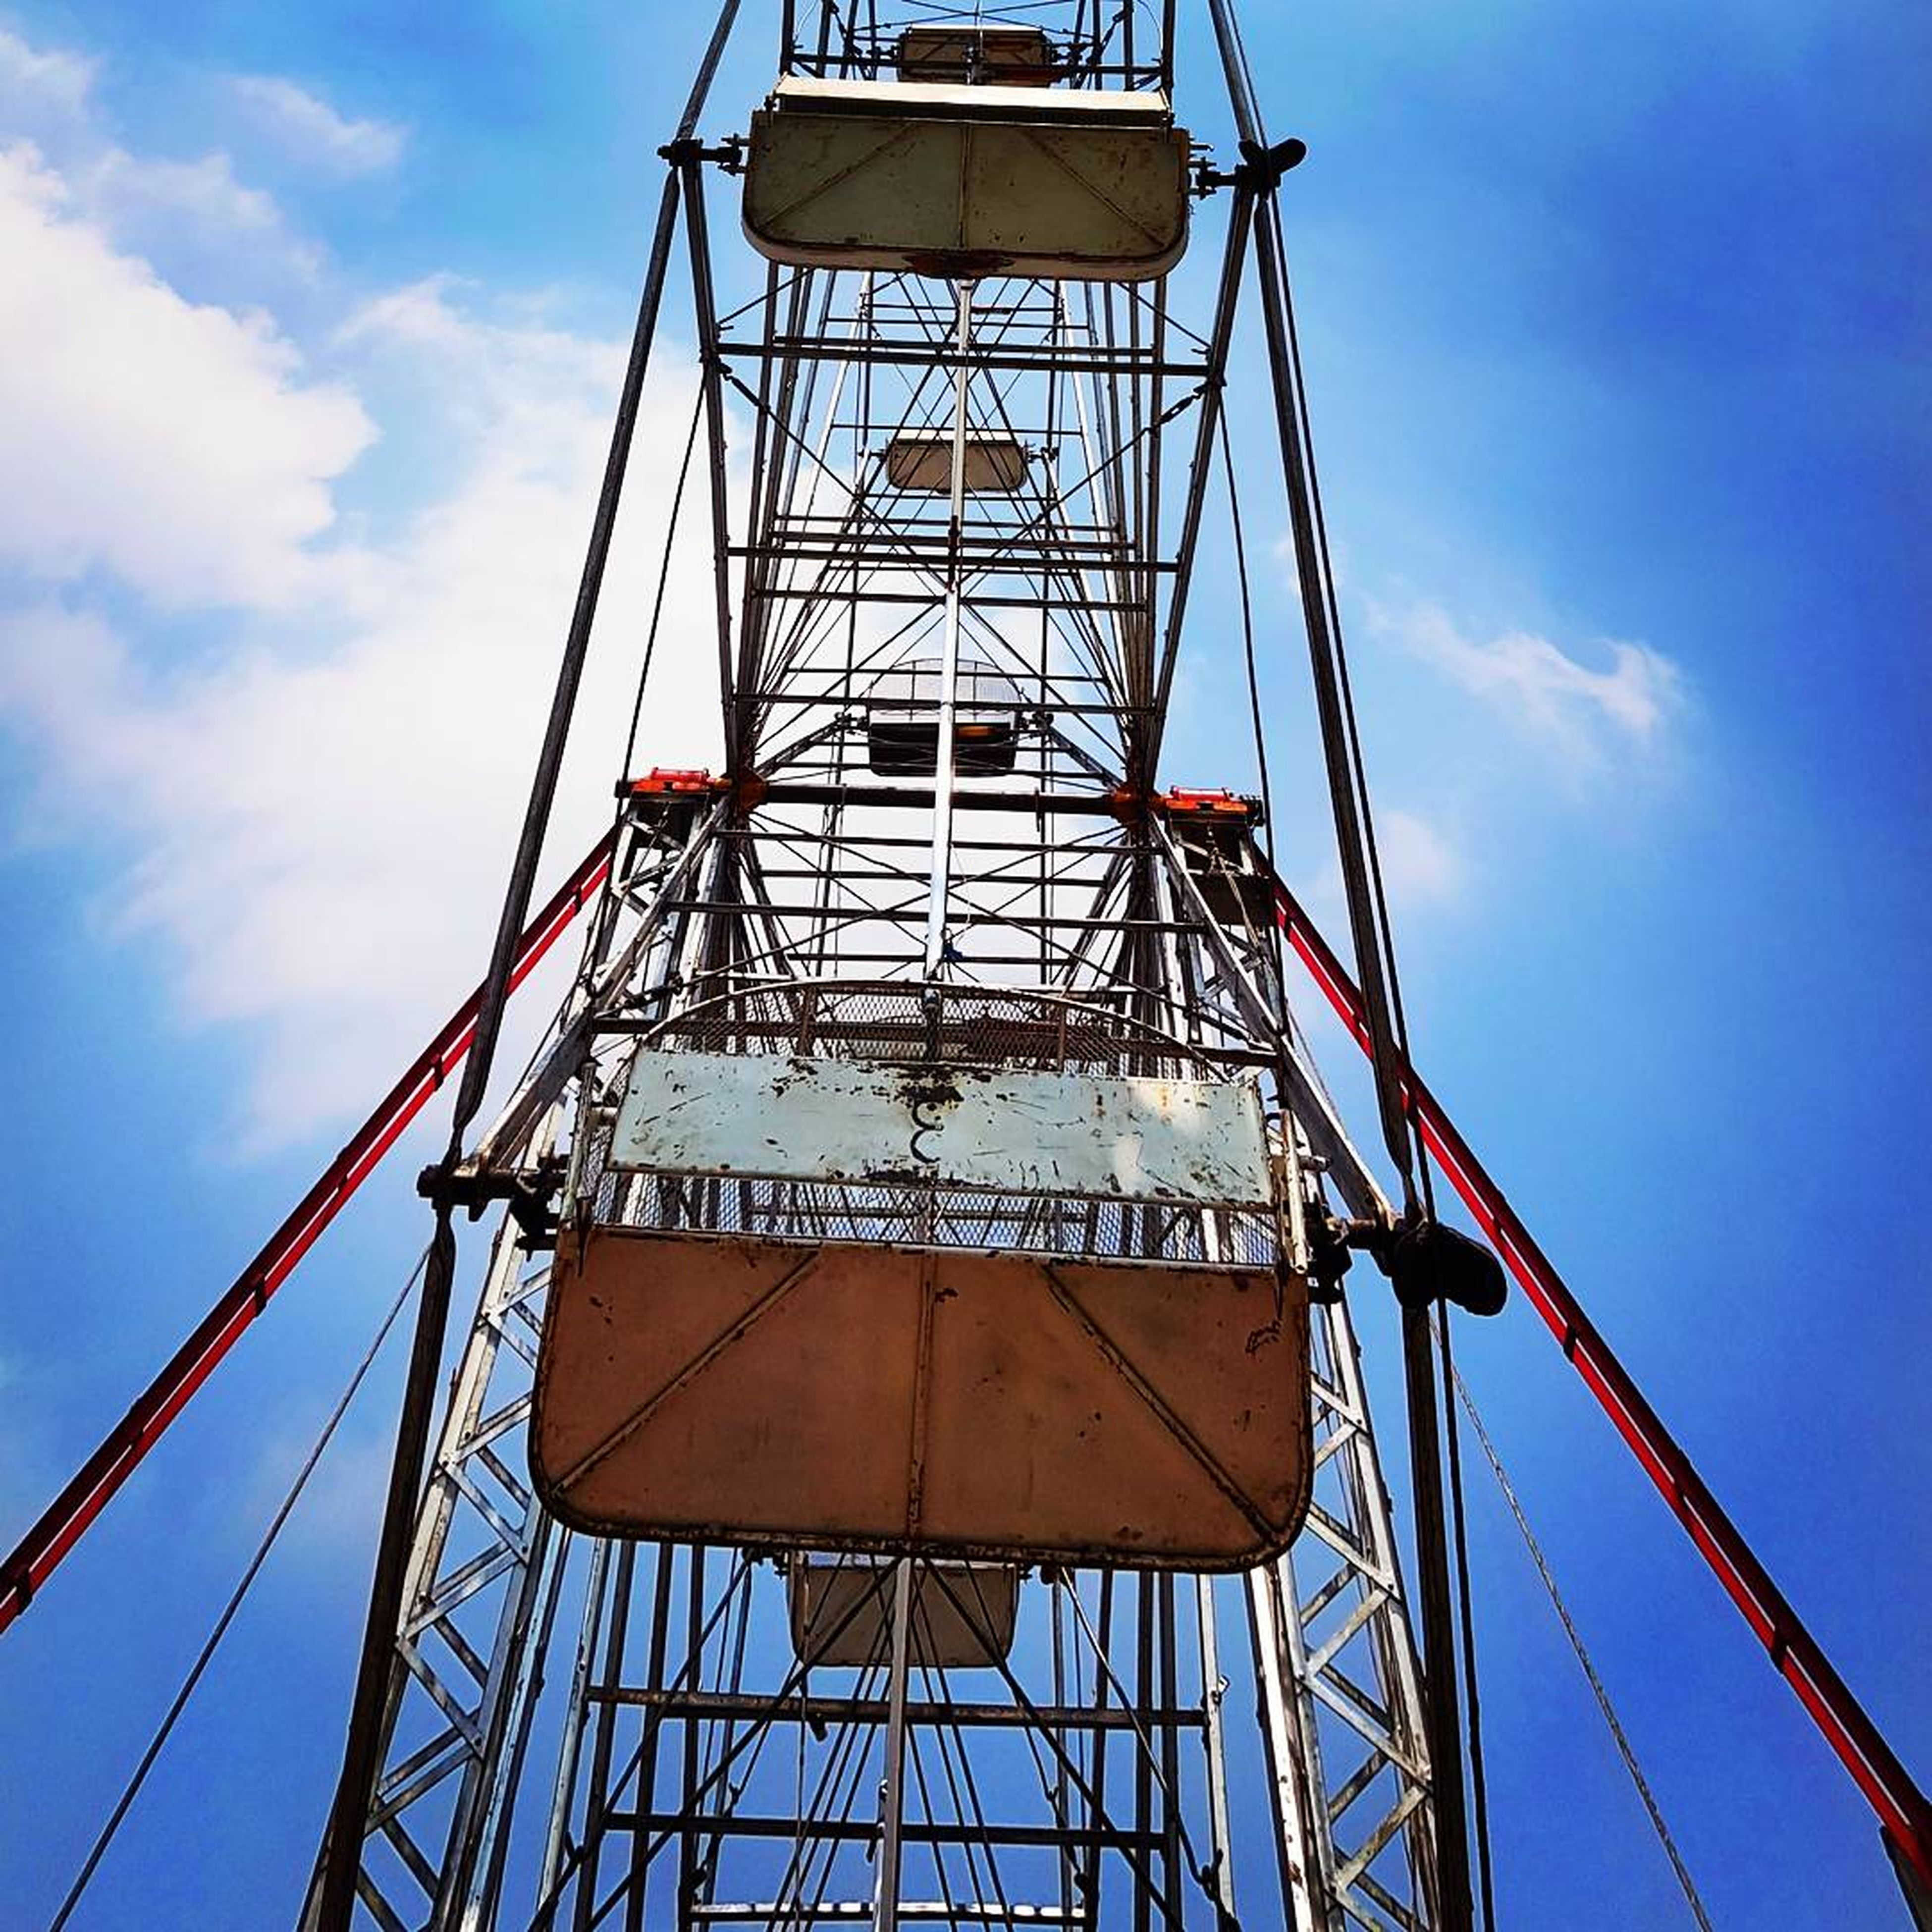 sky, low angle view, cloud - sky, built structure, day, architecture, lookout tower, blue, outdoors, no people, water tower - storage tank